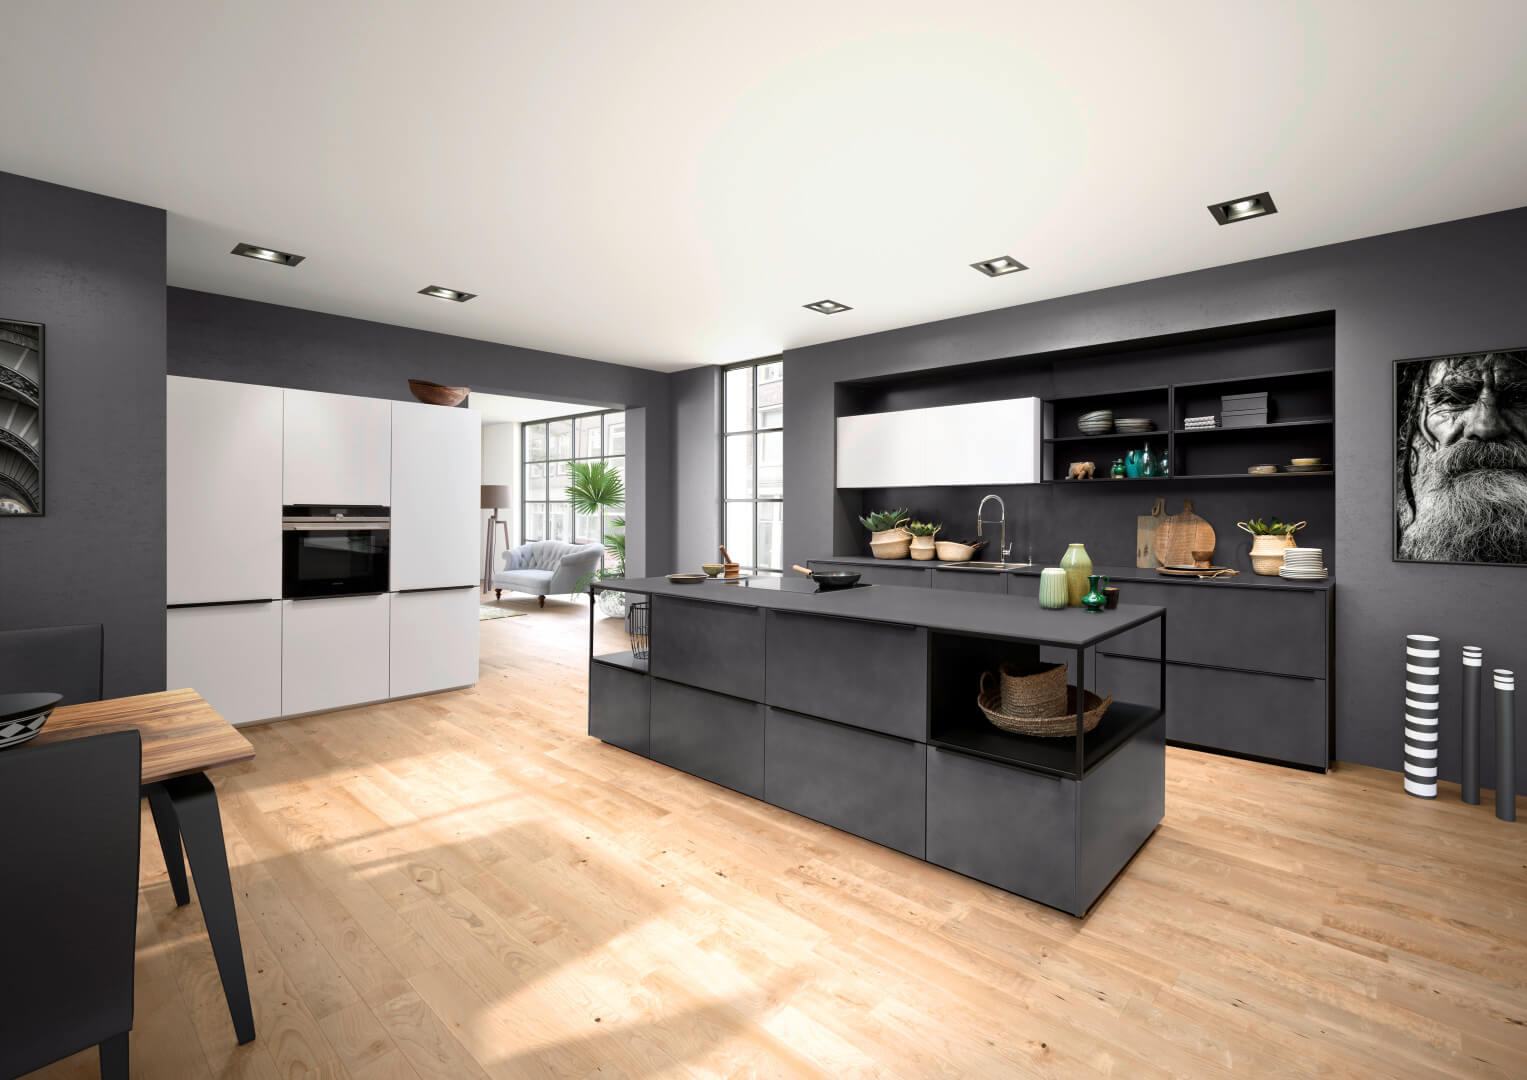 Nolte-Kitchens-Ferro-Gallery1